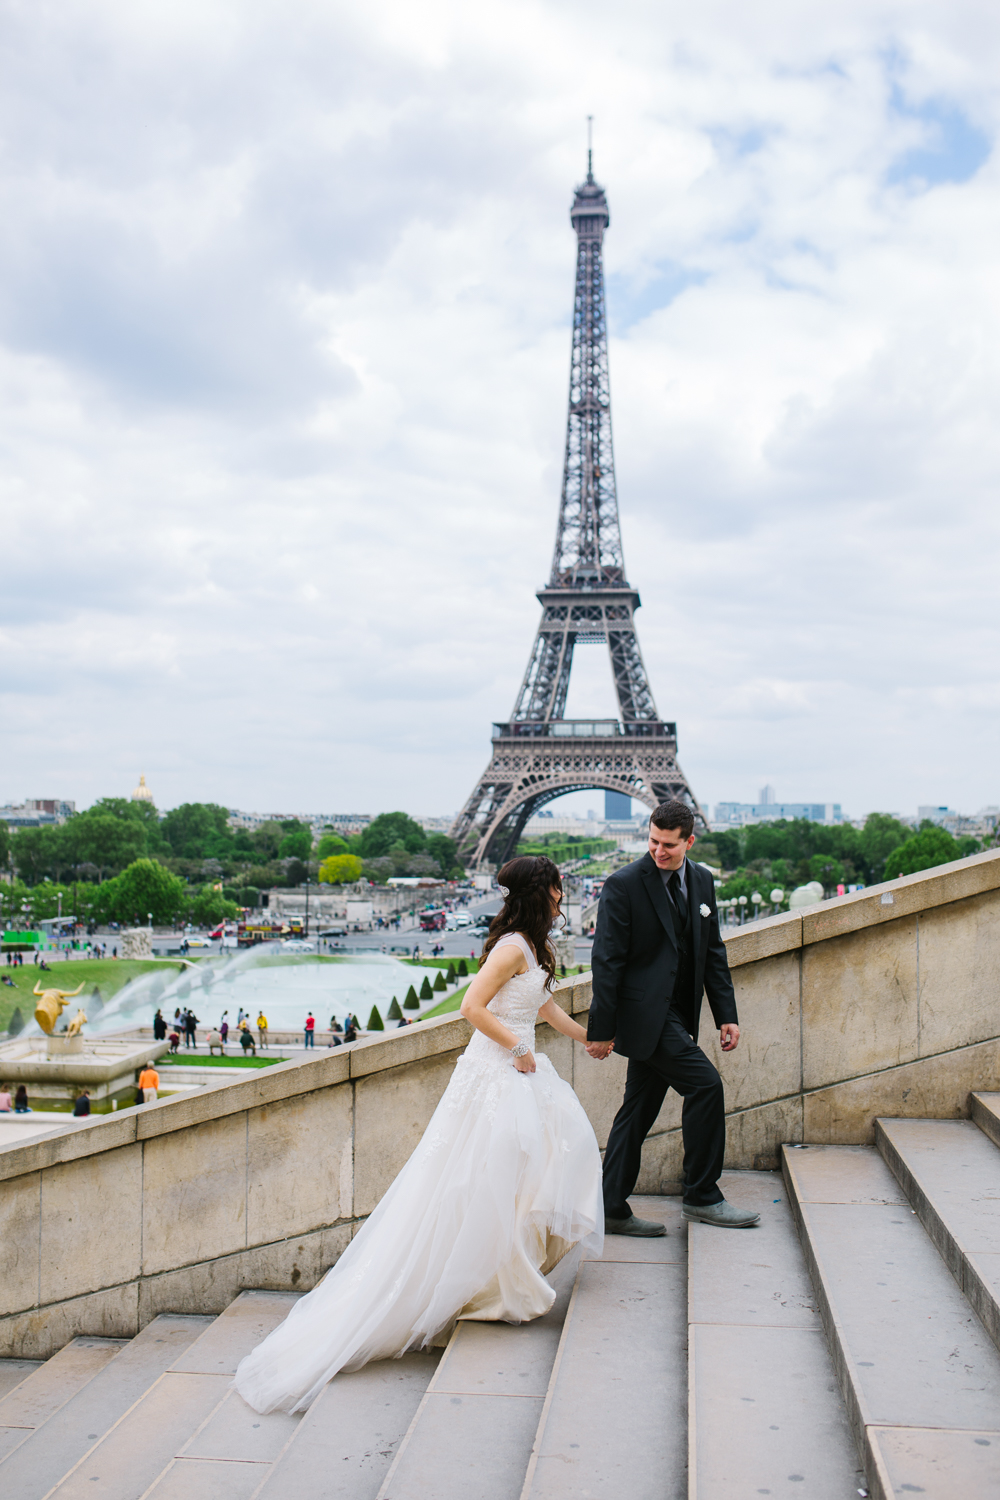 Chico-Wedding-Photography-Ranalla-Photo-Films-Wedding-Video-Wedding-Photographer-Destination-wedding-photographer-venice-wedding-paris-wedding-paris-night-eiffel-tower-7.jpg